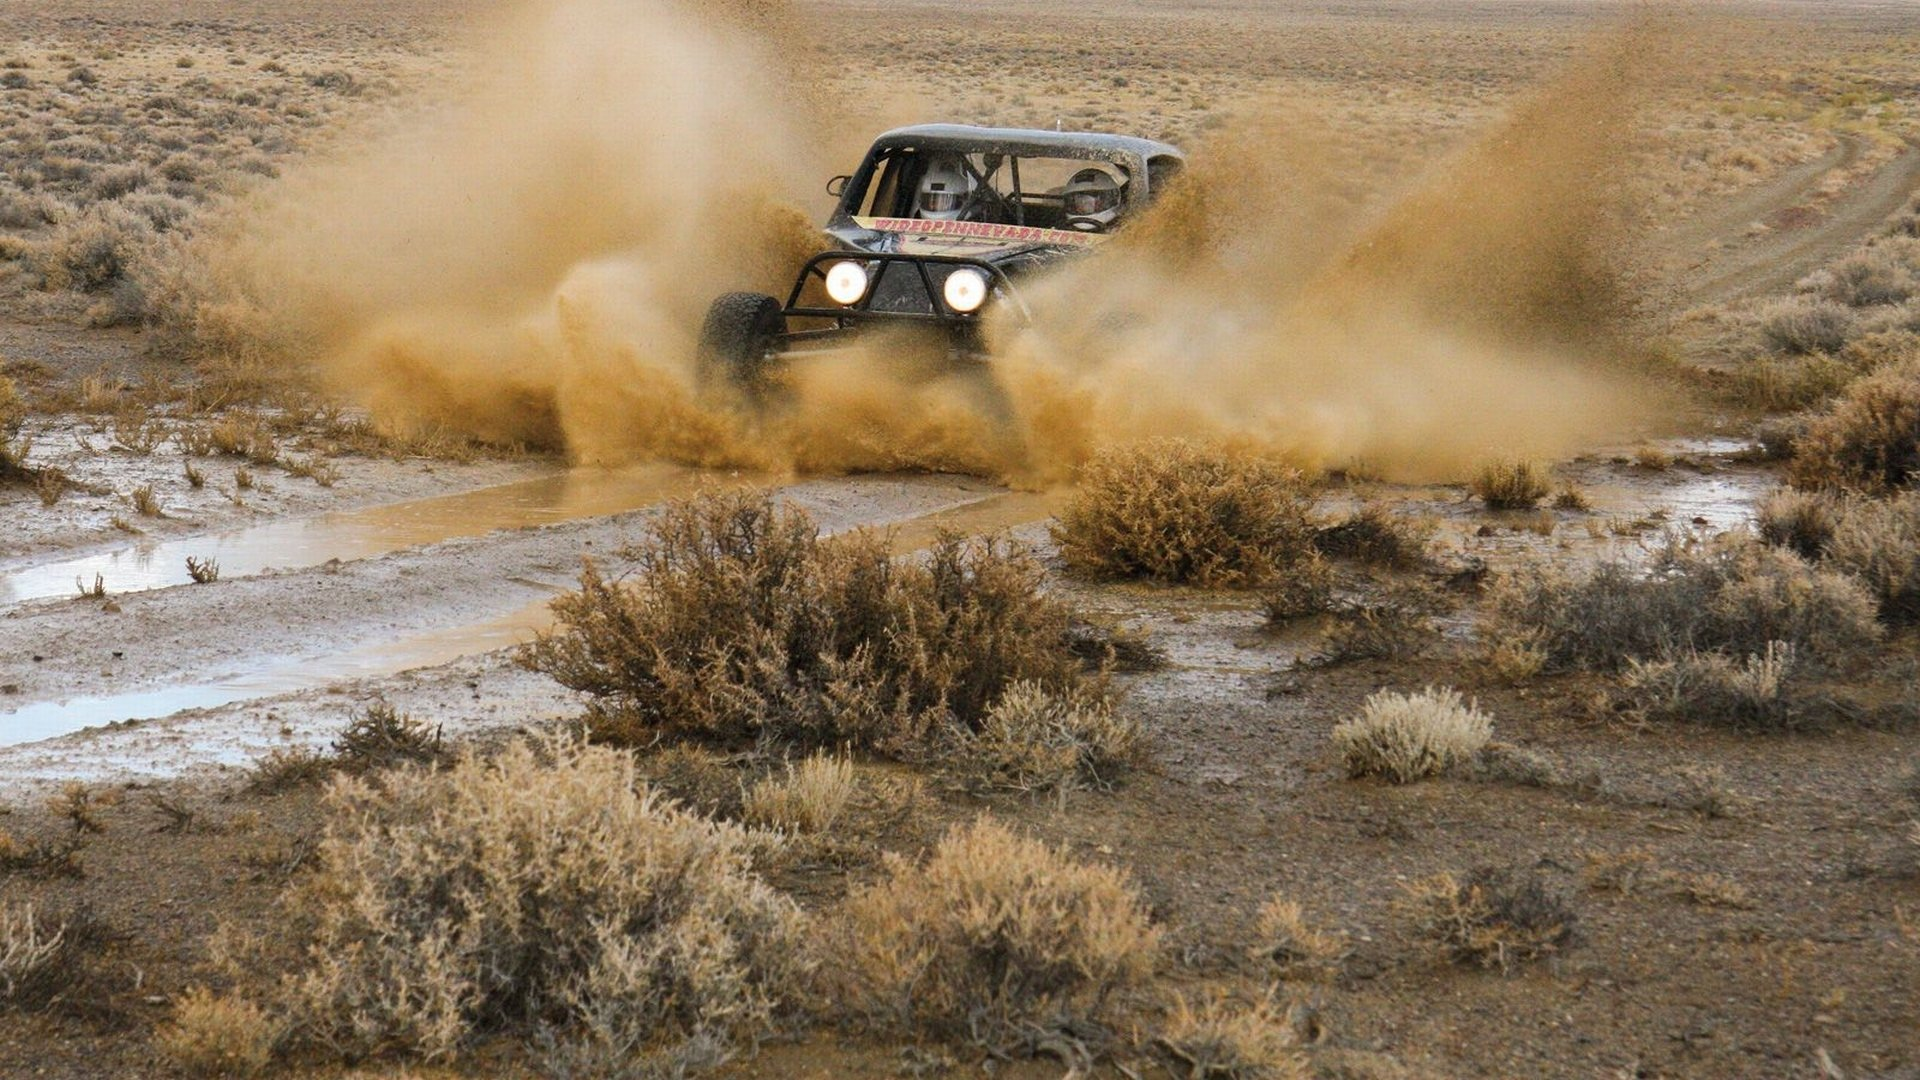 Rally Car Wallpapers Free Off Road Hd Wallpaper Background Image 1920x1080 Id